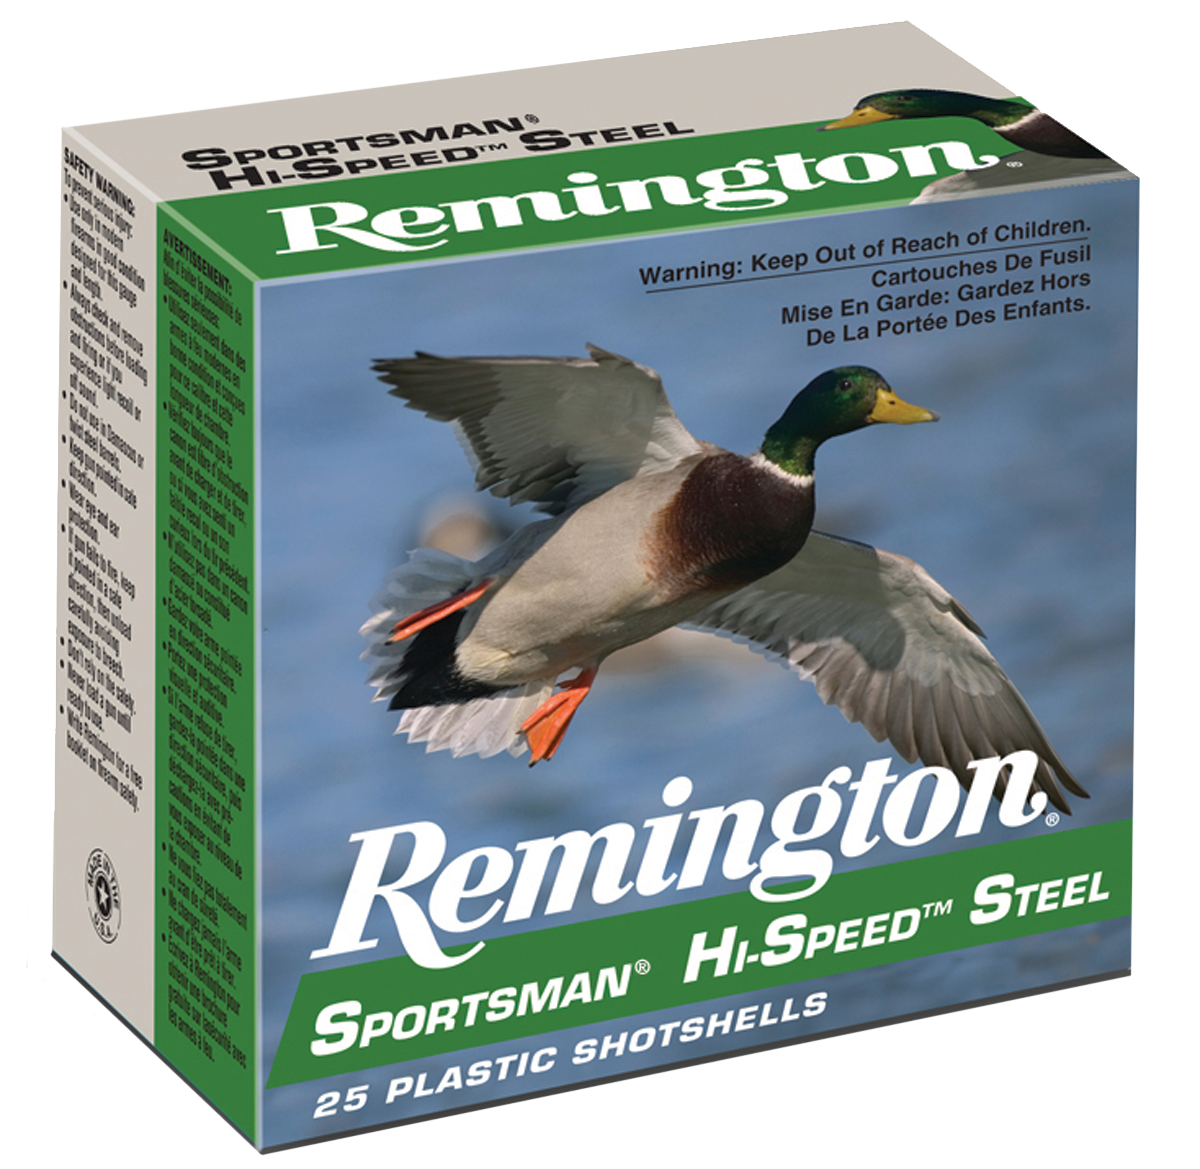 Remington Sportsman Hi-Speed Waterfowl Ammunition 20 Gauge 2-3/4